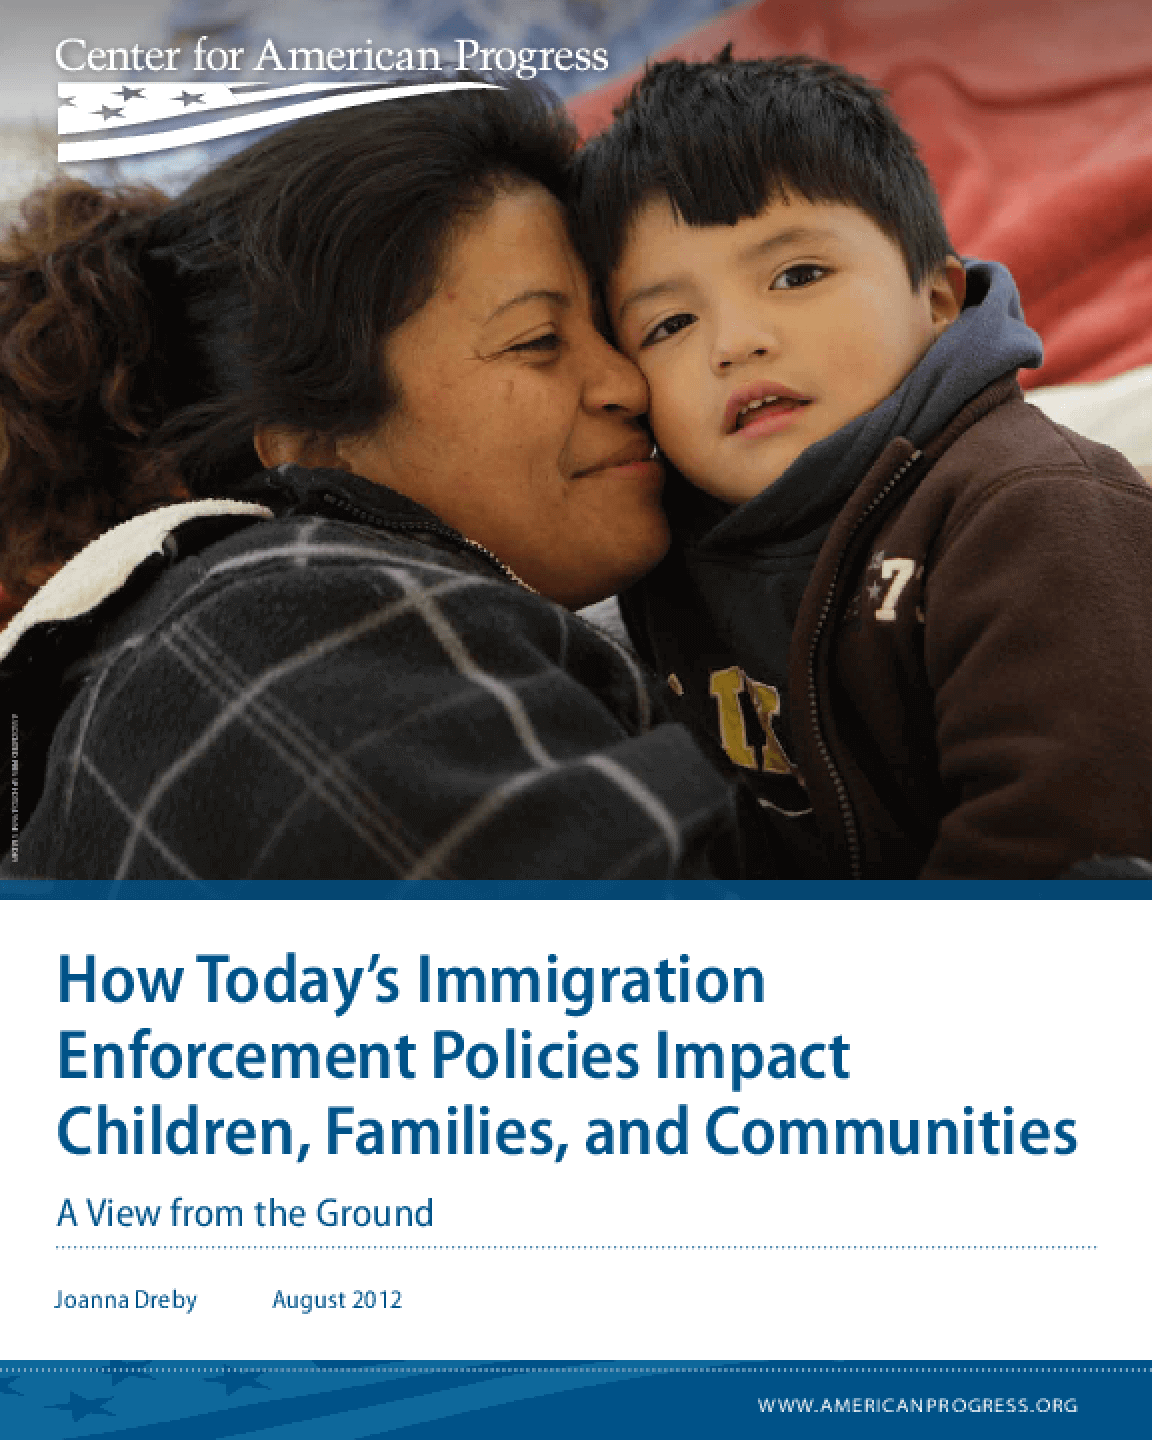 How Today's Immigration Enforcement Policies Impact Children, Families, and Communities: A View from the Ground